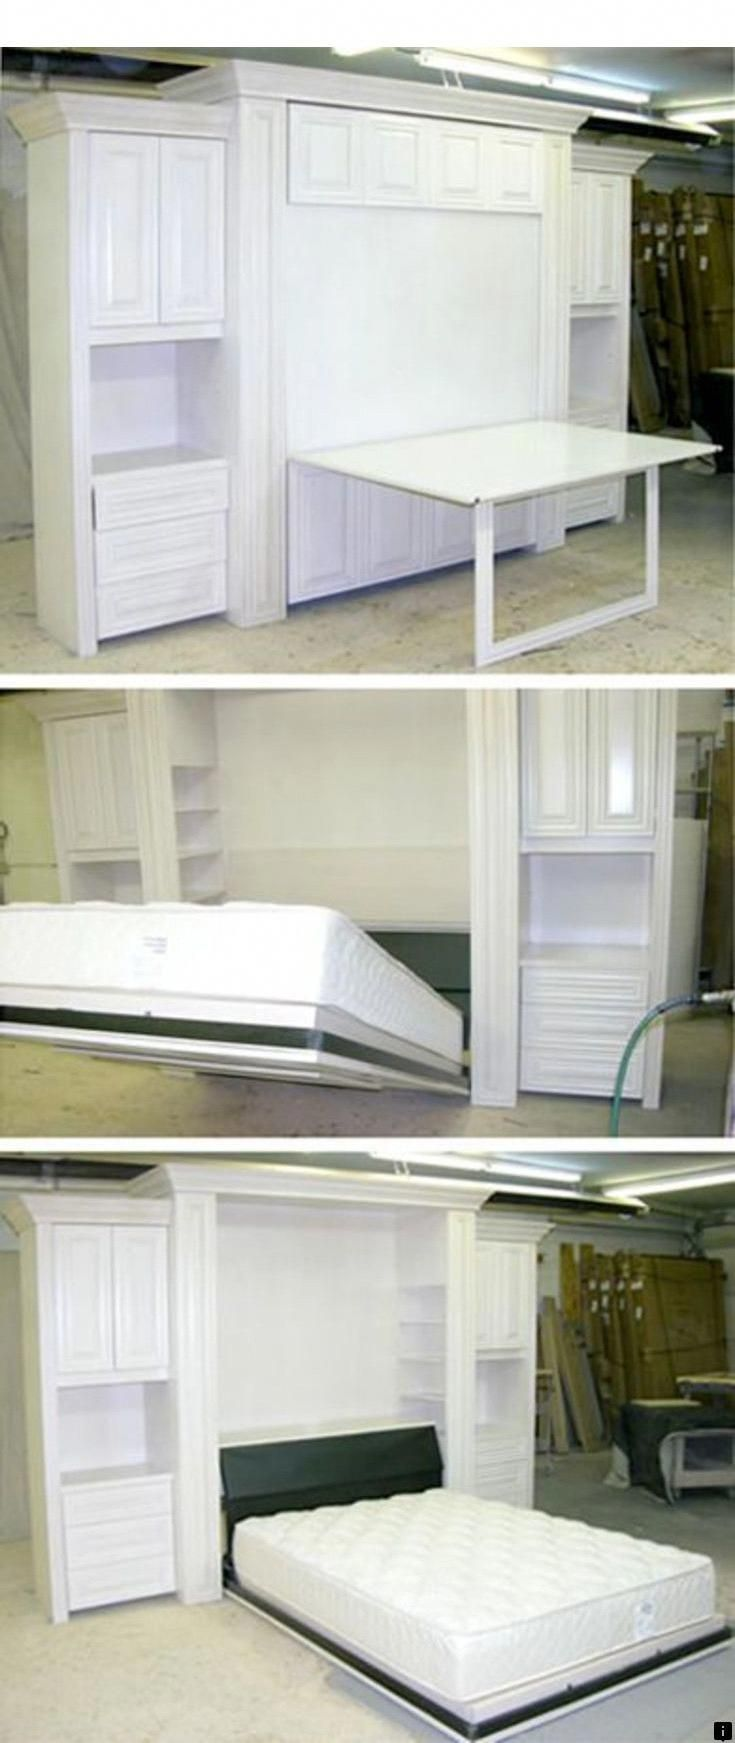 Best Find More Information On Murphy Beds For Sale Near Me 640 x 480